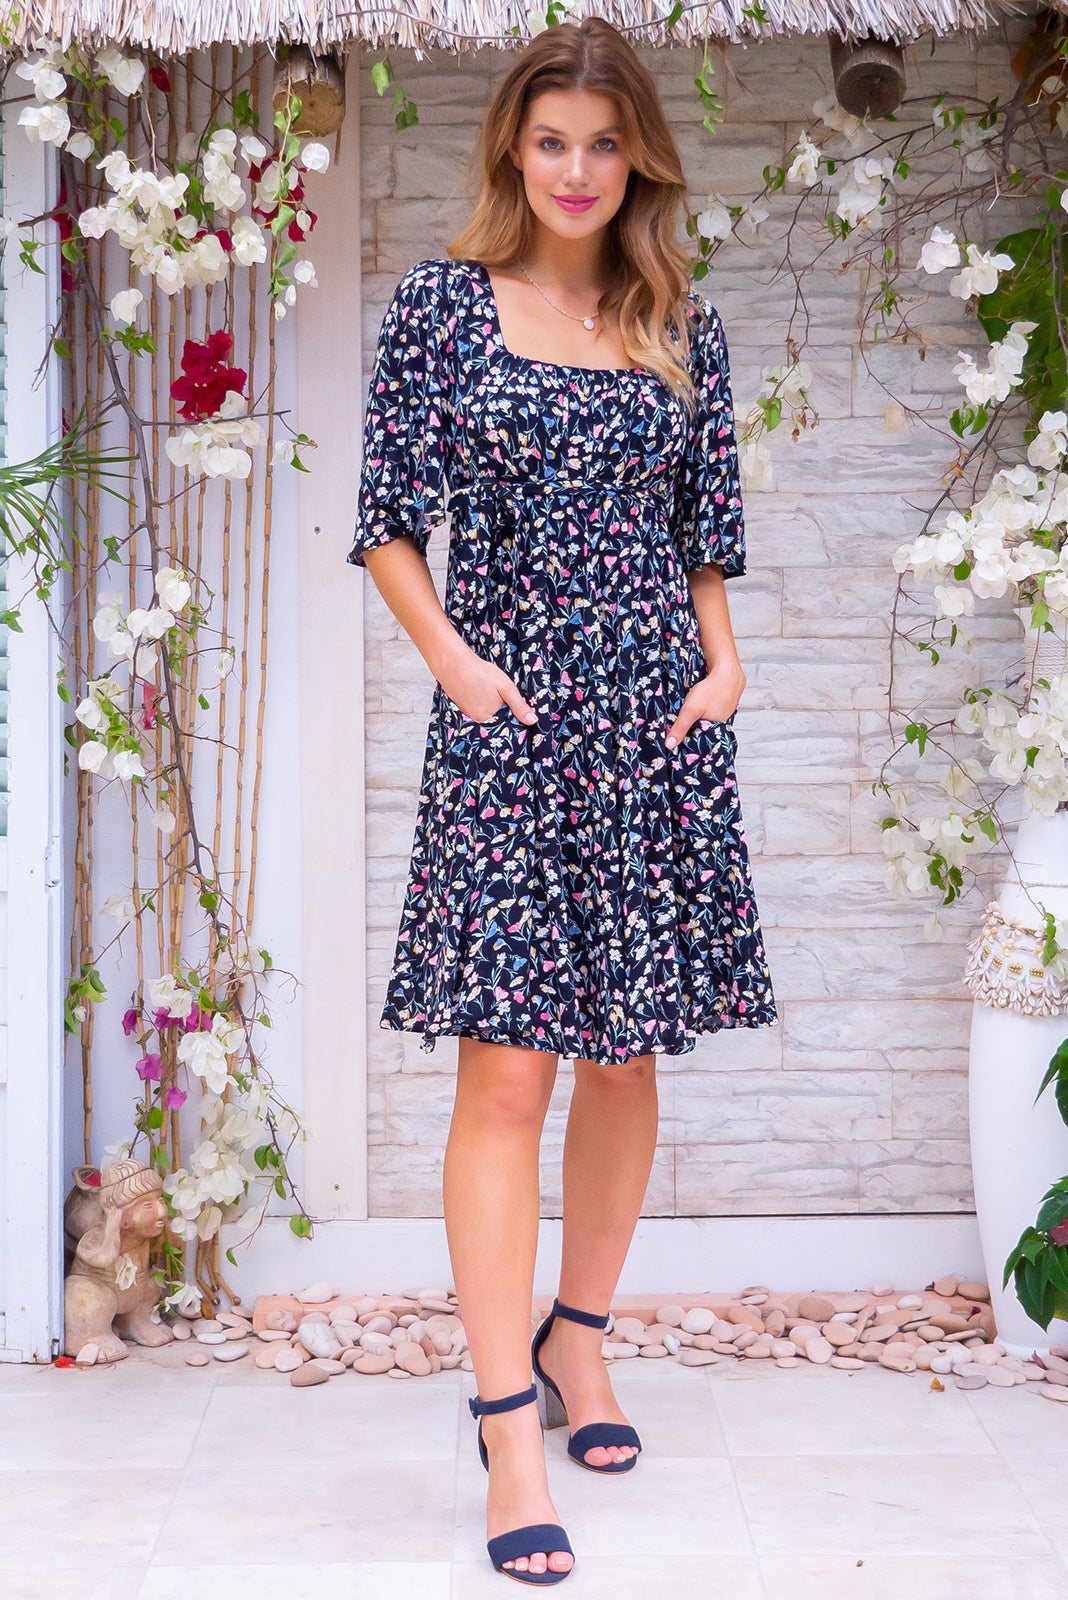 Canterbury Piana Noir Mini Dress, bohemian vintage inspired style, floral print, 3/4 sleeves, fabric tie belt, side pockets.